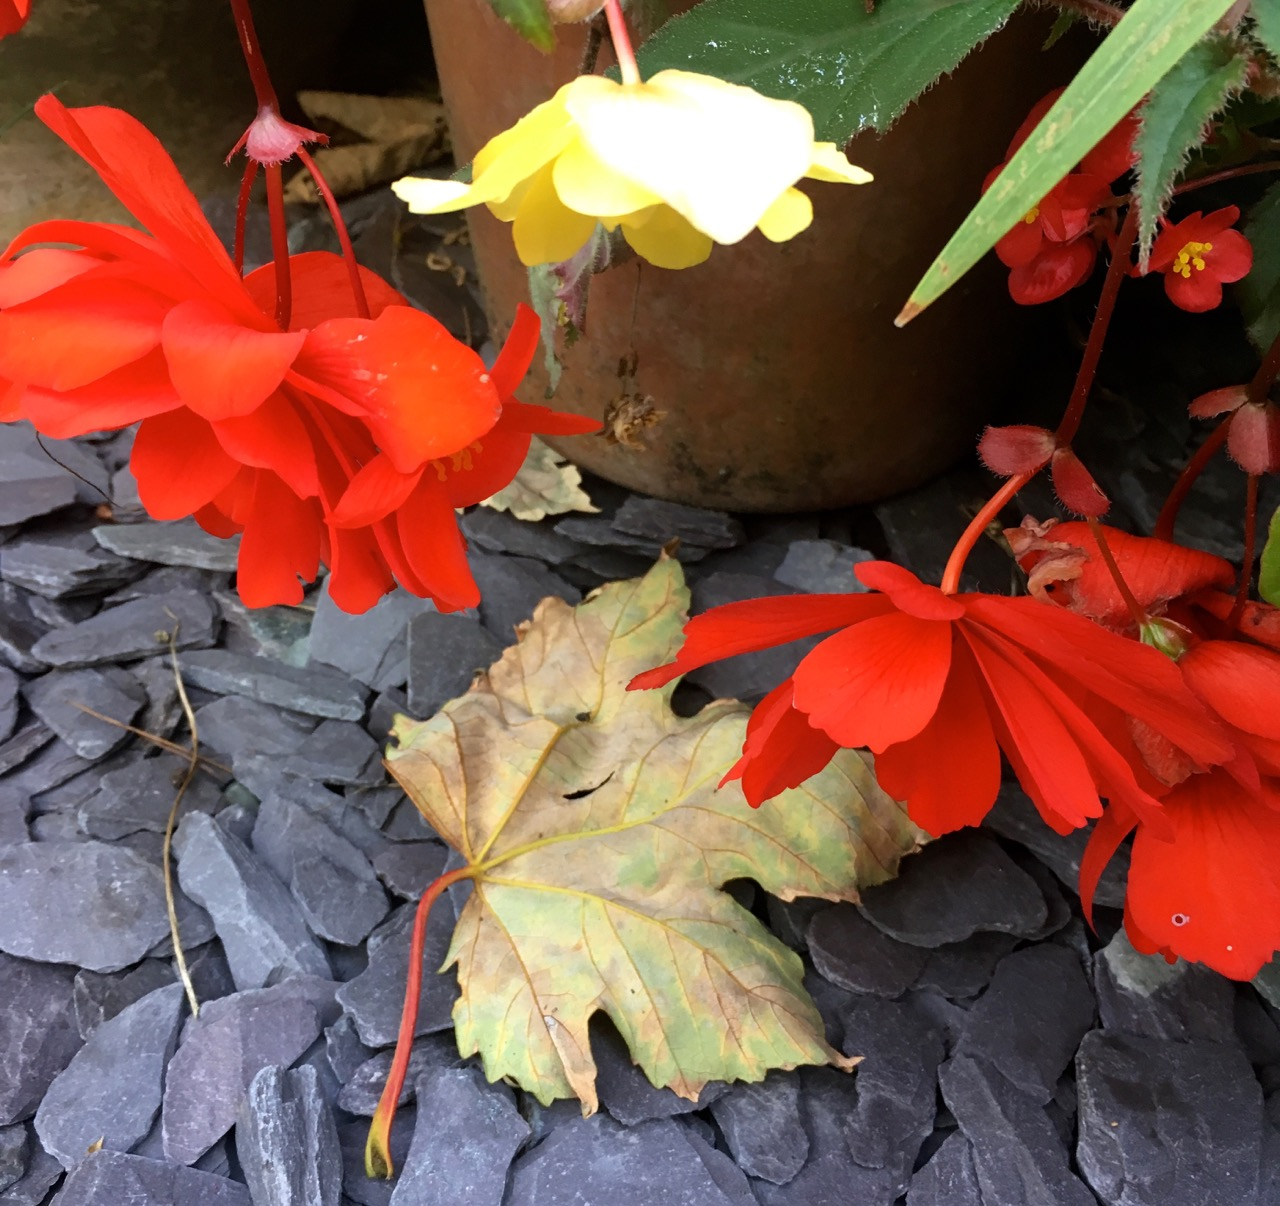 summer bedding and autumn leaves